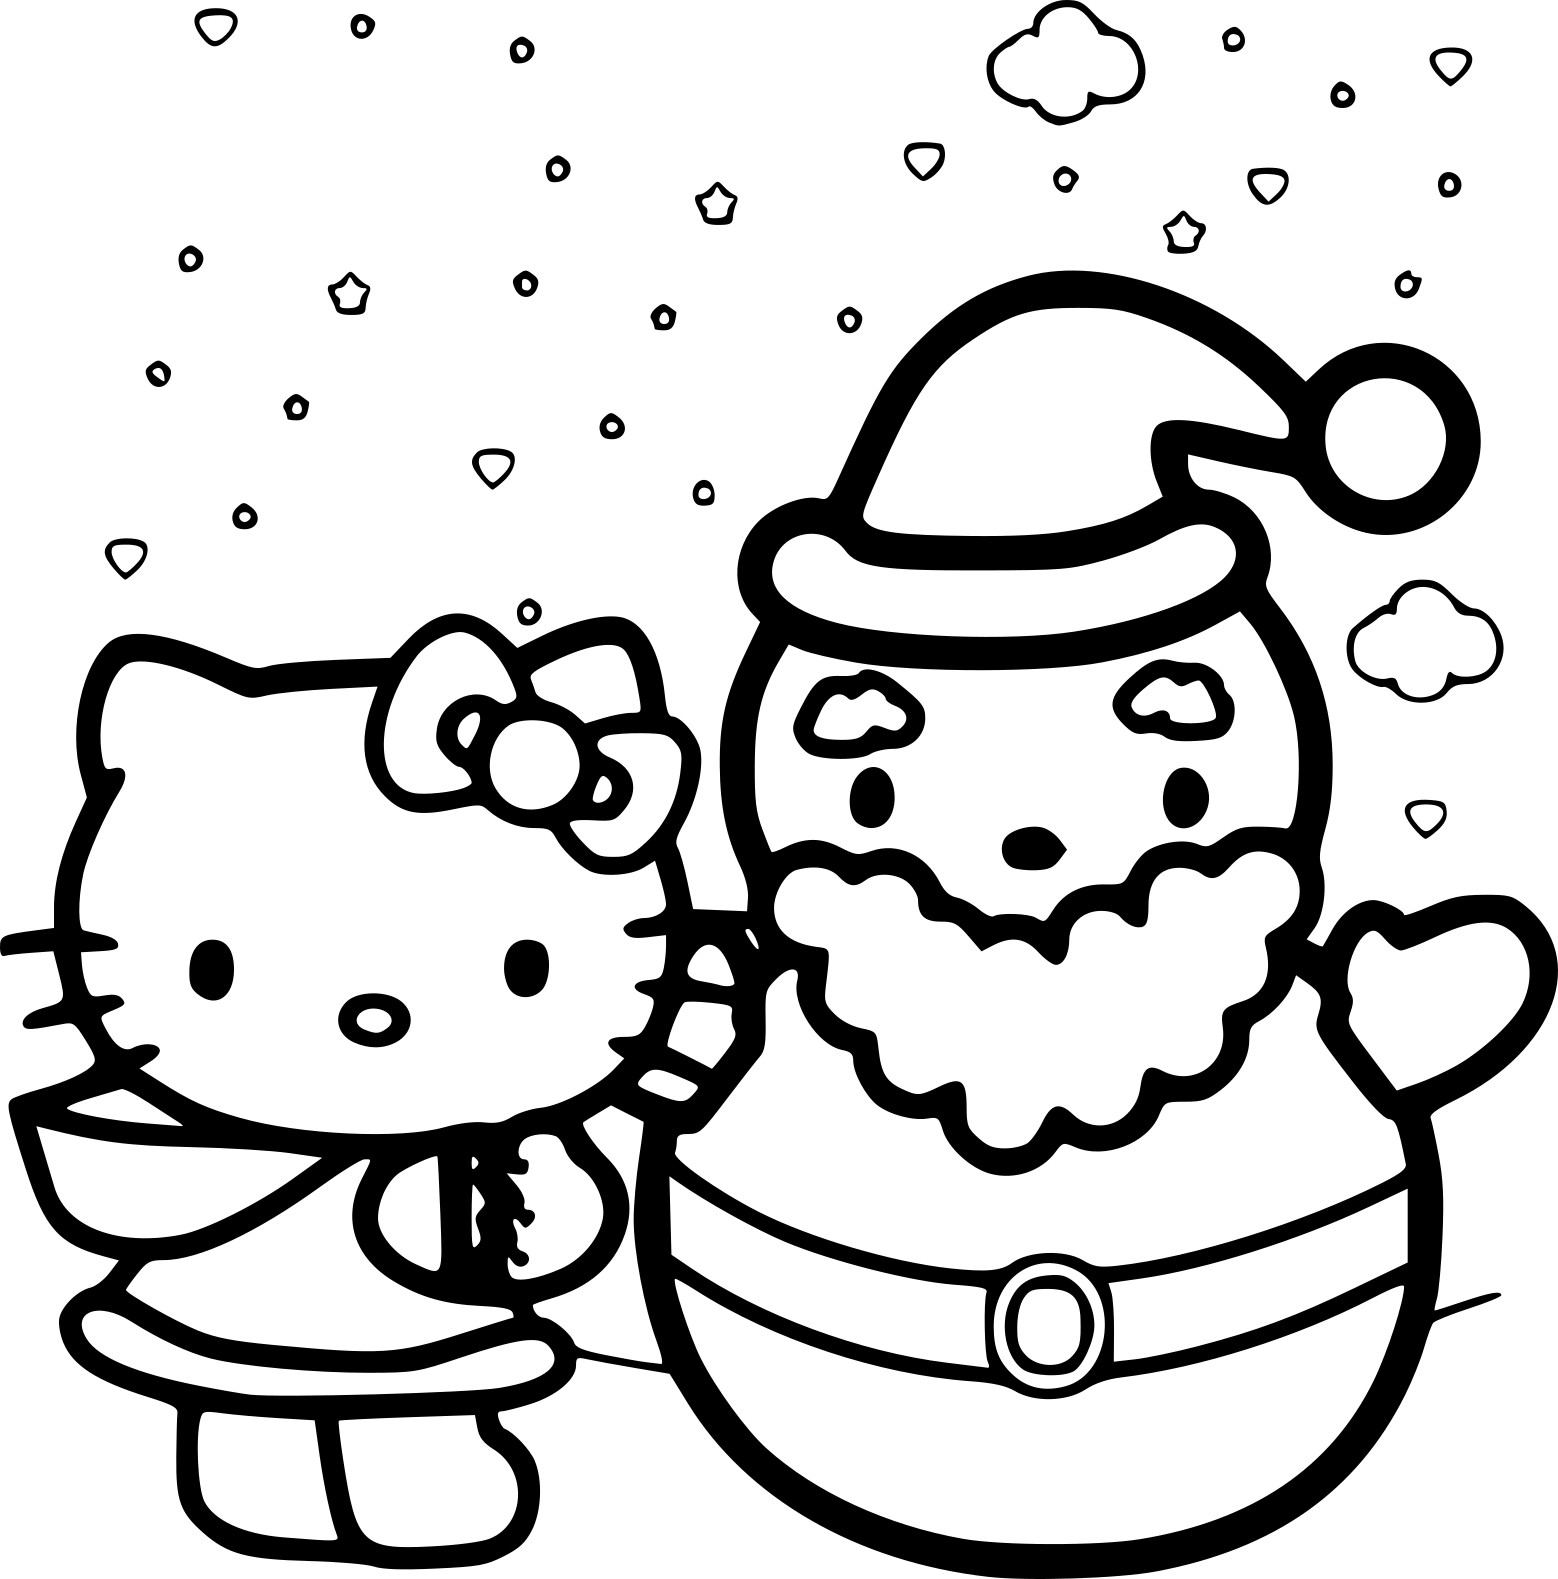 Coloriage hello kitty no l imprimer - Hello kitty jeux coloriage ...